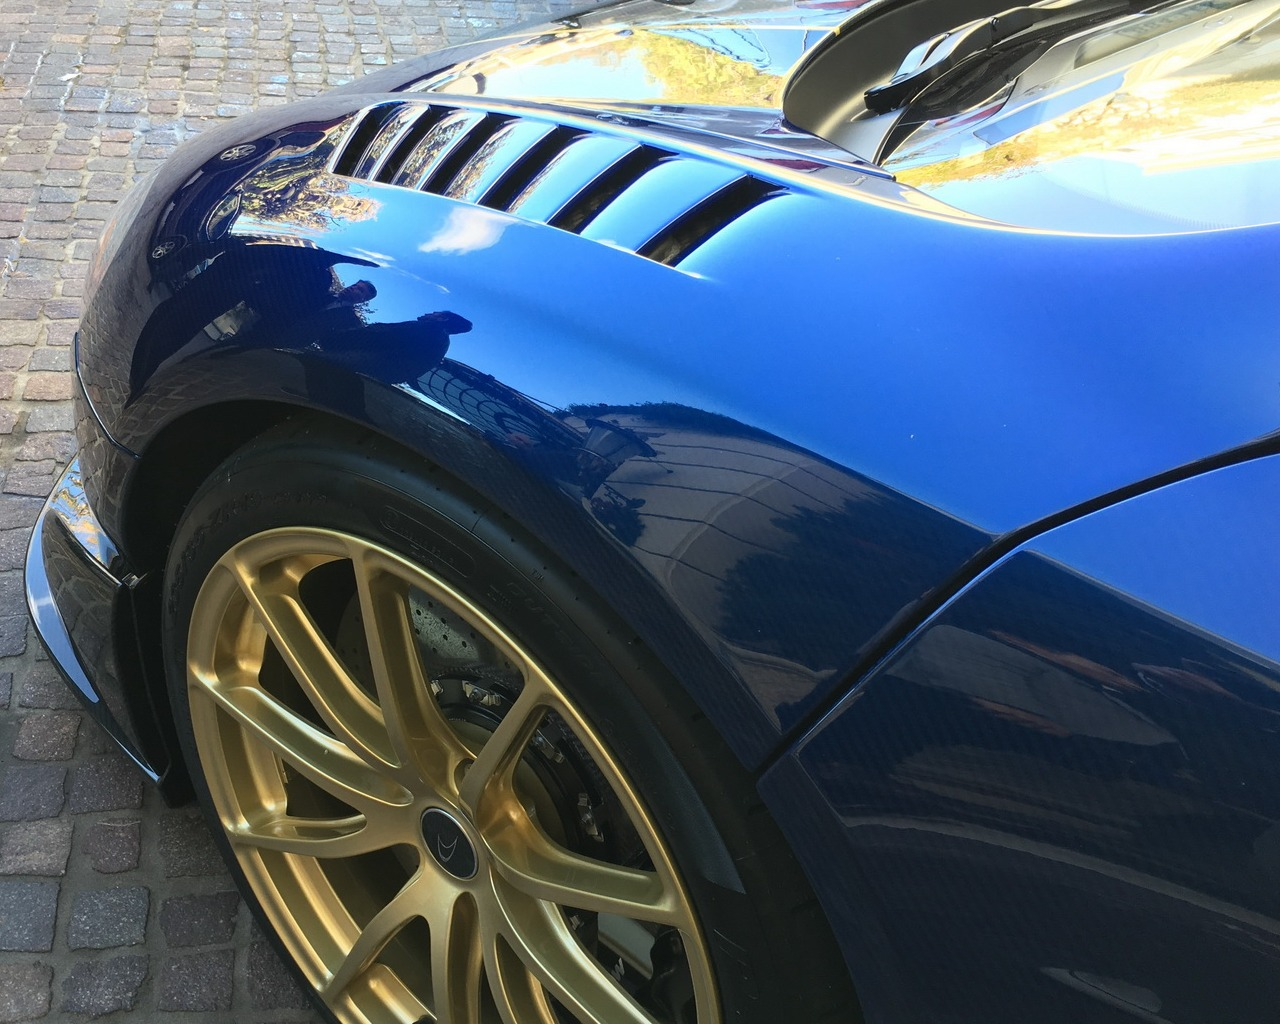 mclaren_675_LT_spider-carbon-golden-wheels_0-100_22